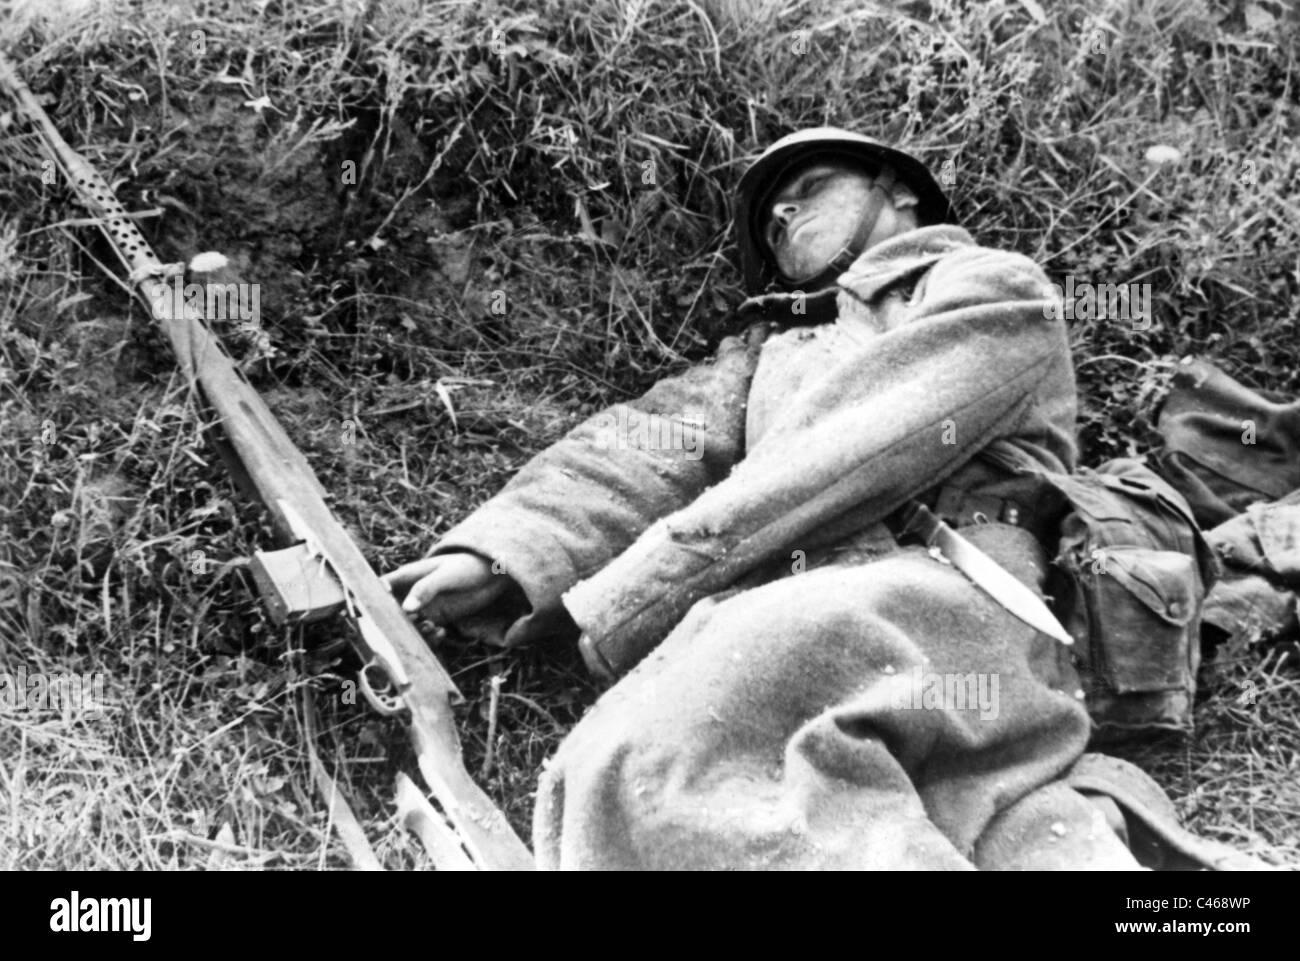 Second World War: Dead soldiers of the Red Army on the Eastern Front - Stock Image